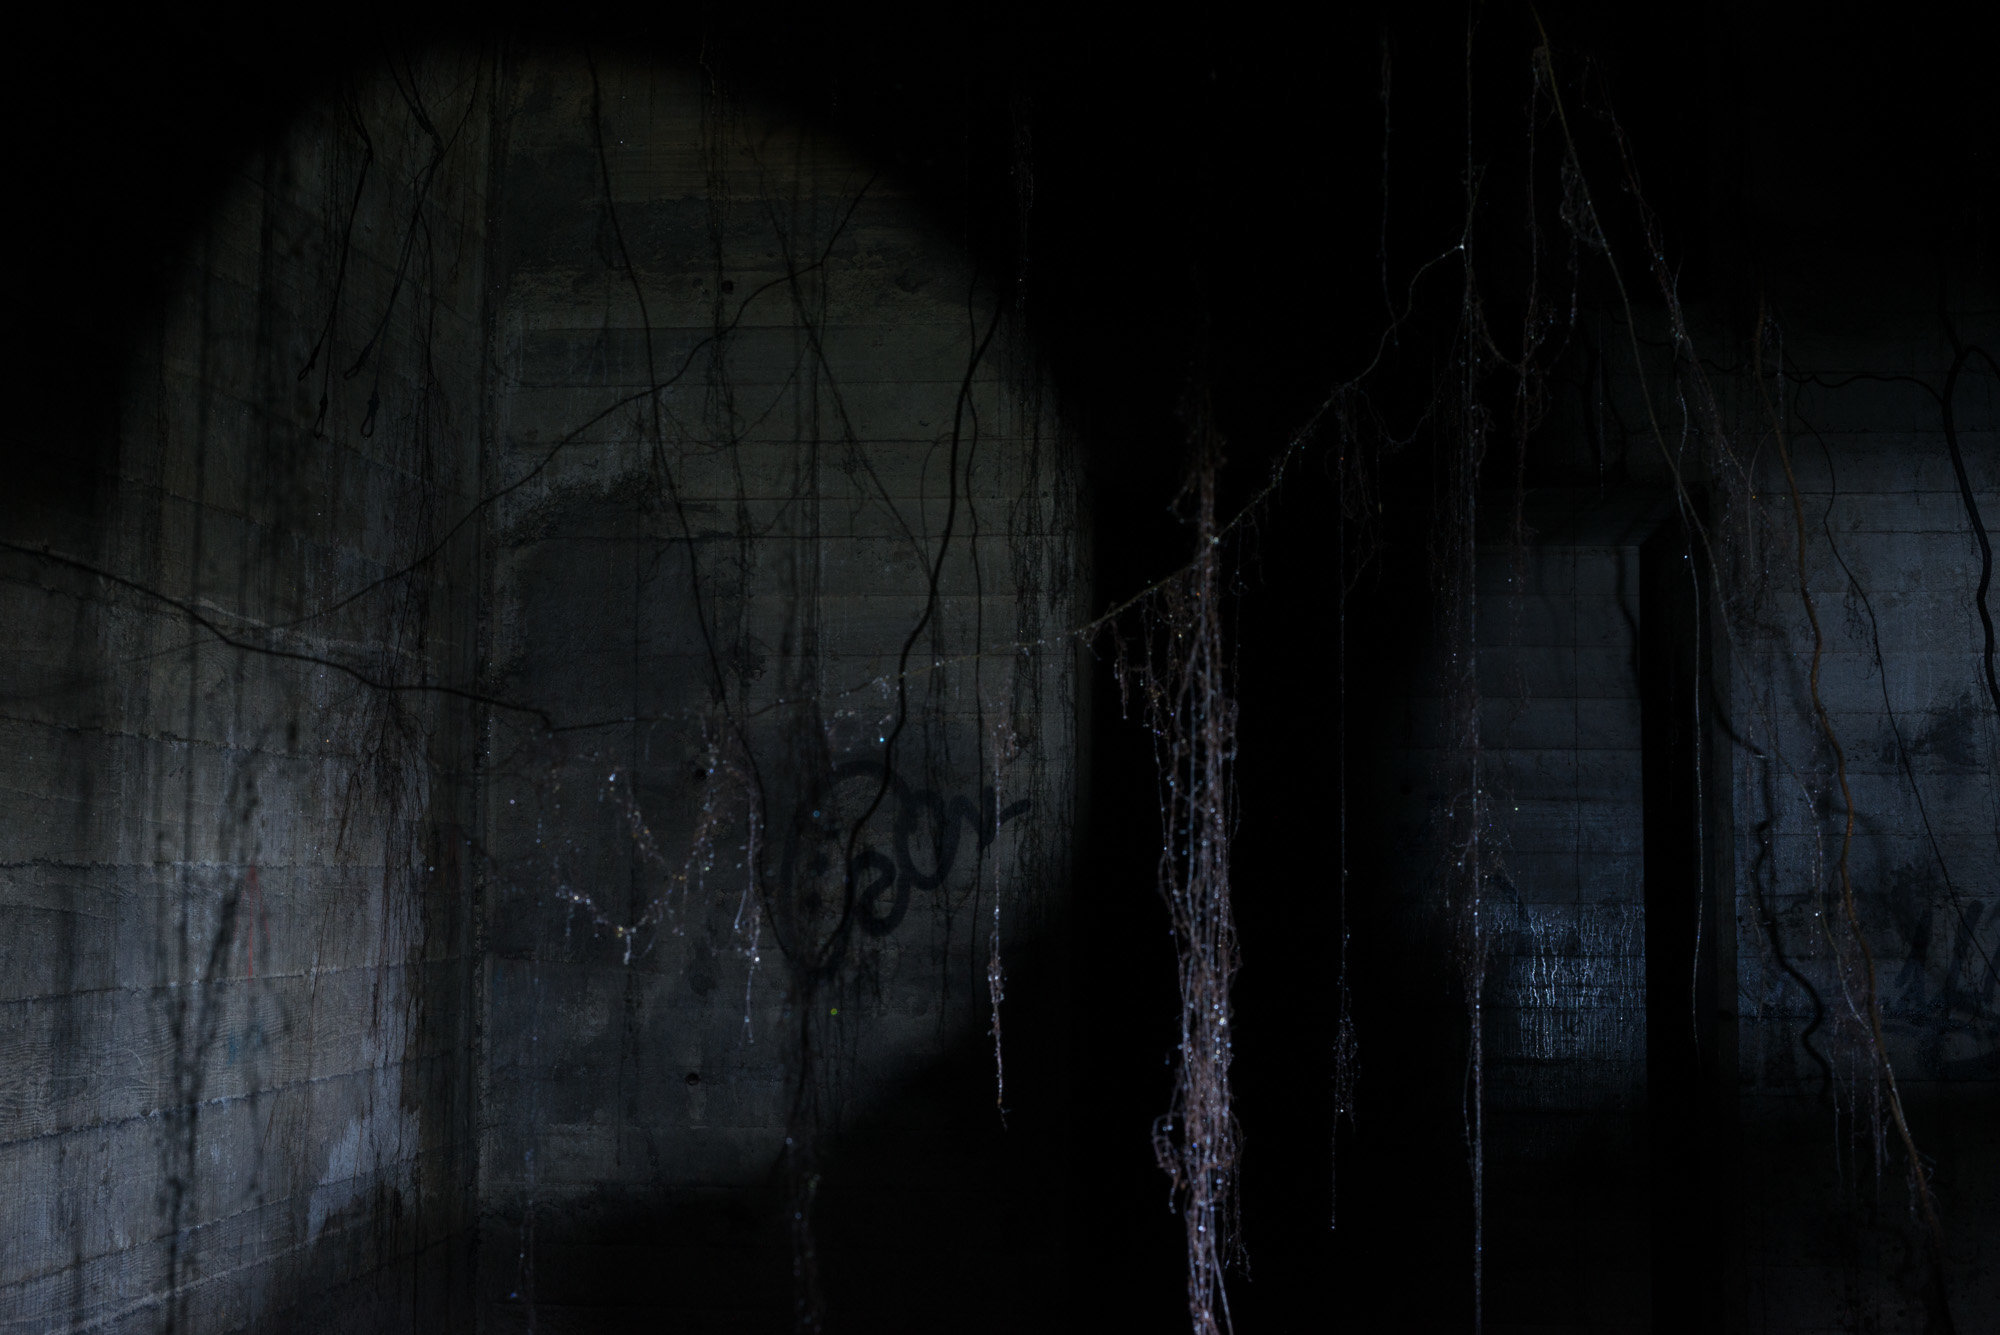 Davis Jones, Waiting 2016, video still, single channel HD video with stereo sound, 11 minute loop